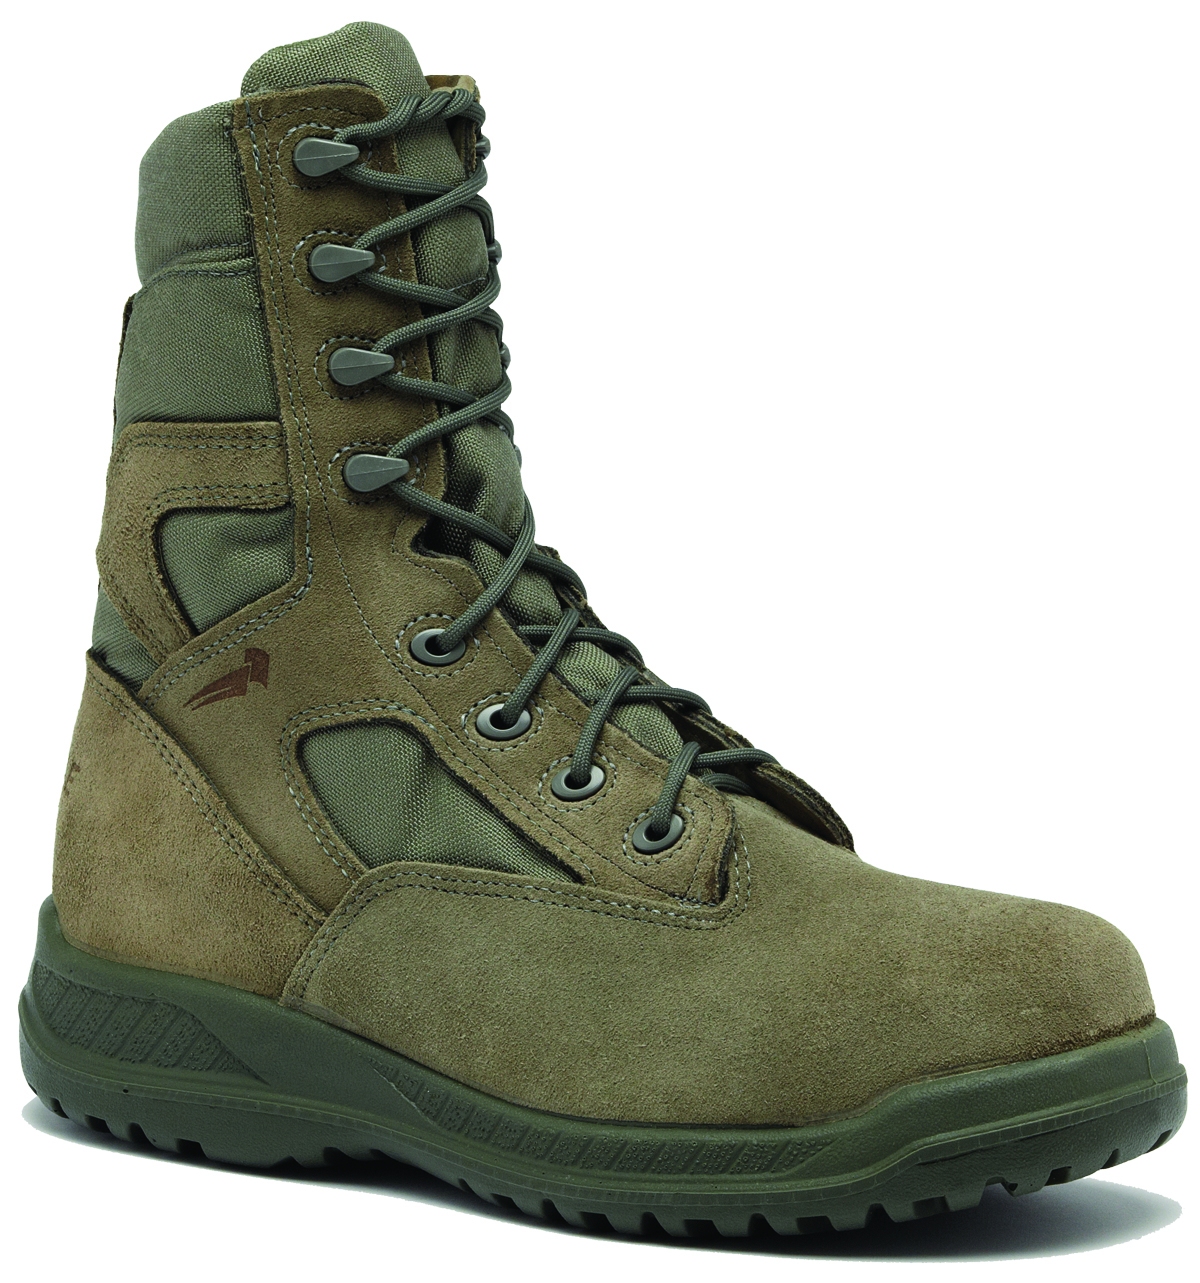 Combat Boots For Sale hz6R4Tnd